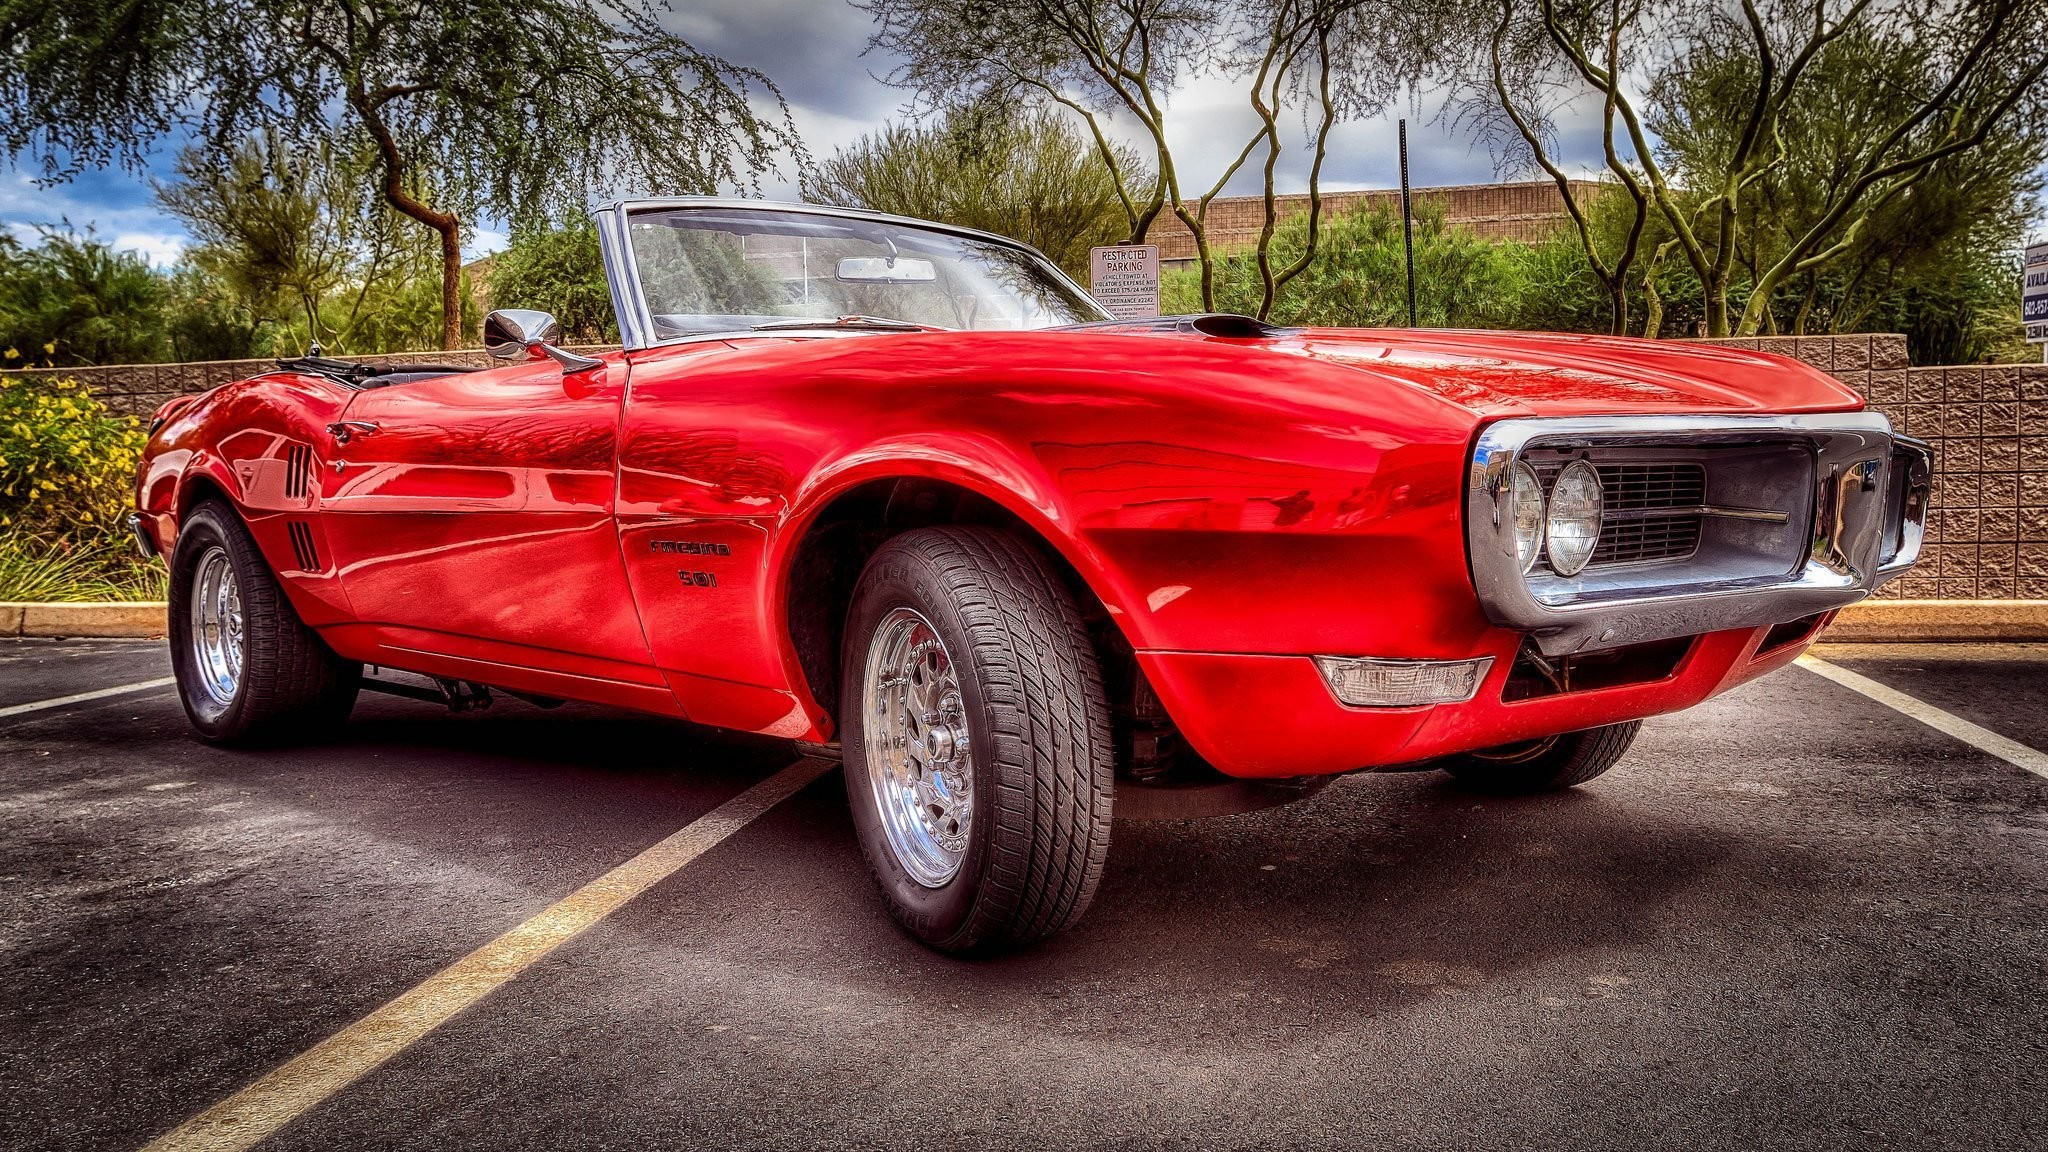 Res: 2048x1152, pontiac firebird faerbёd muscle car front hdr